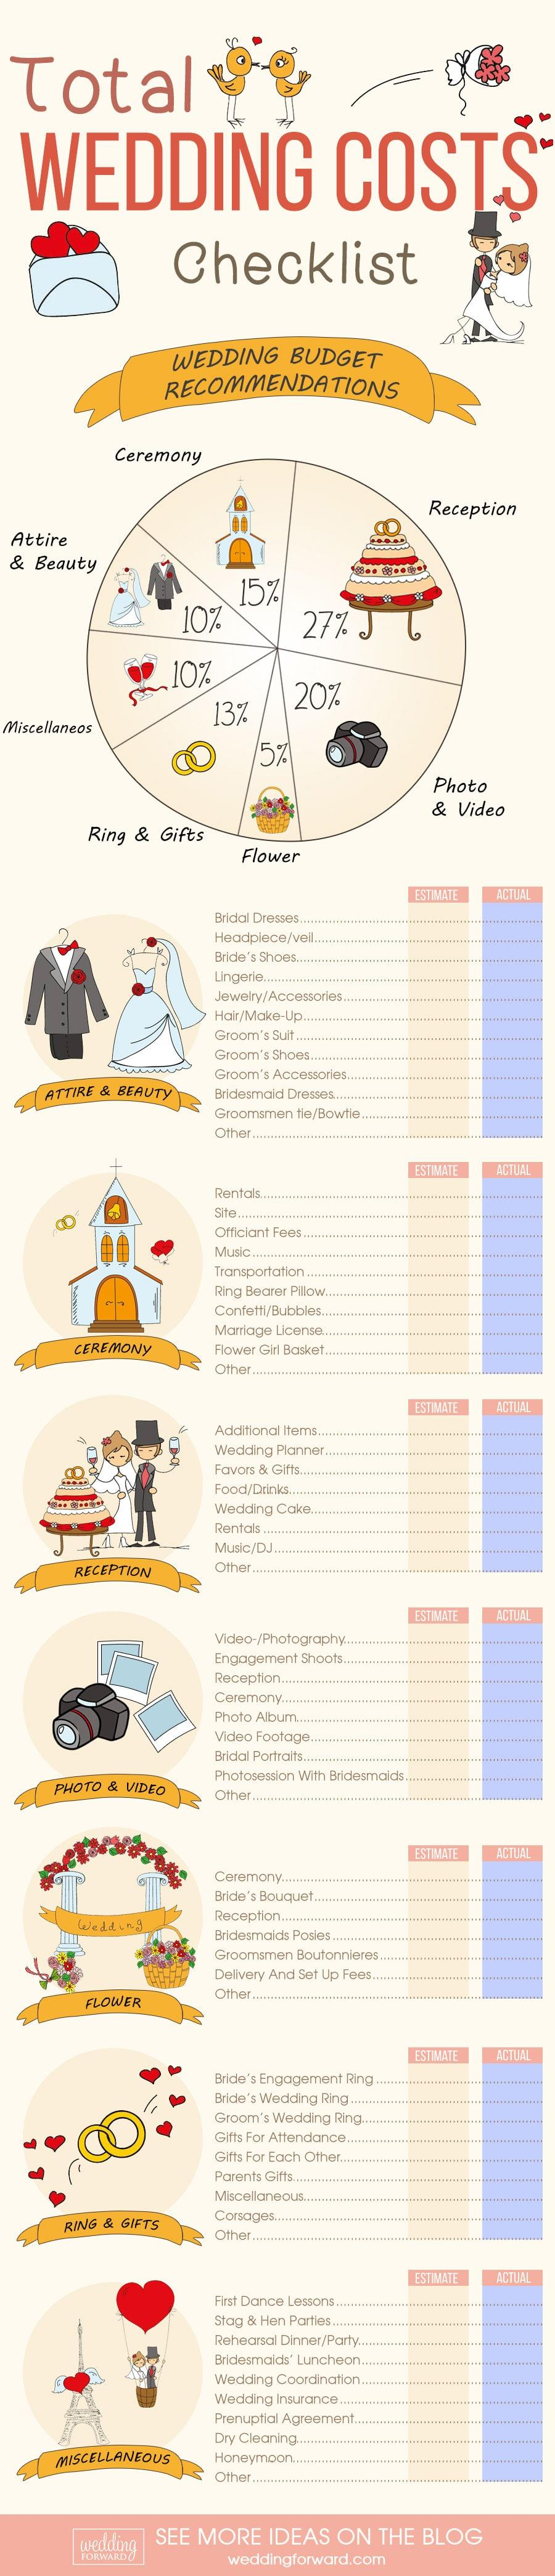 infographic: total wedding cost breakdown